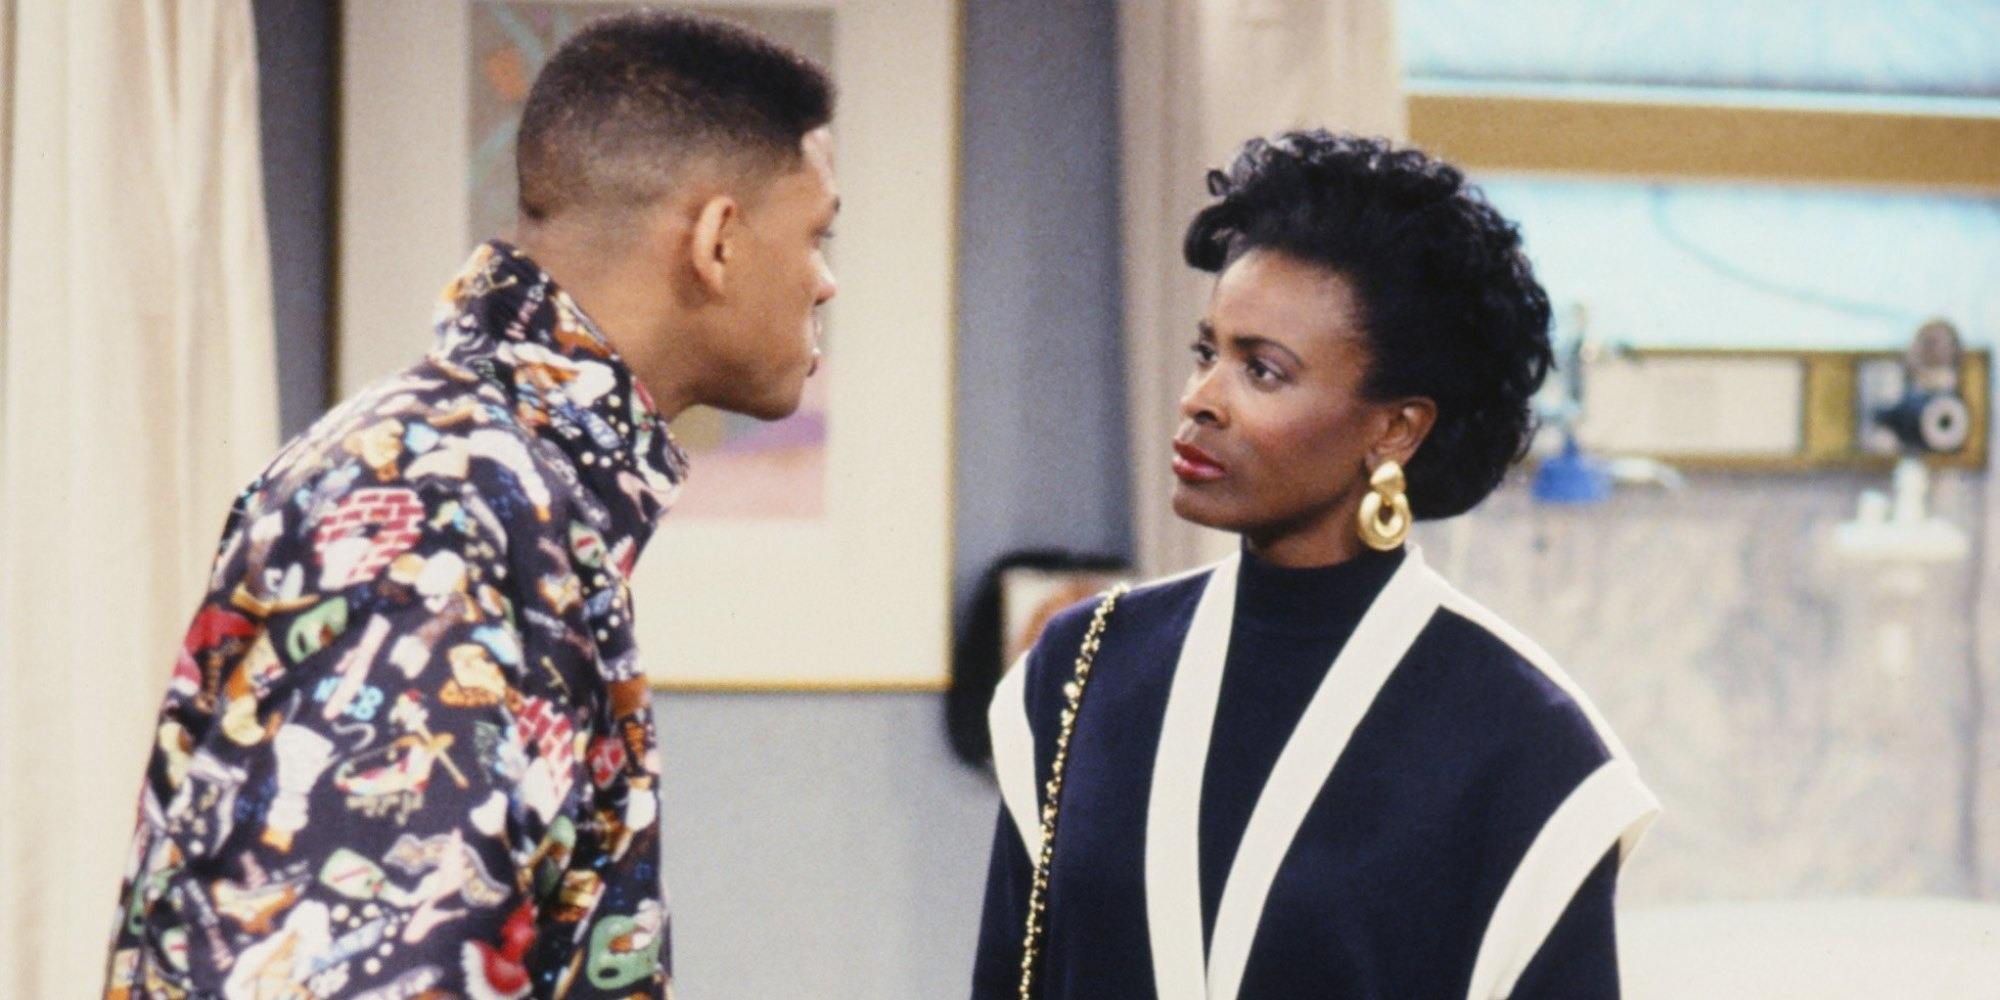 janet hubert on fresh prince of bel air 2015